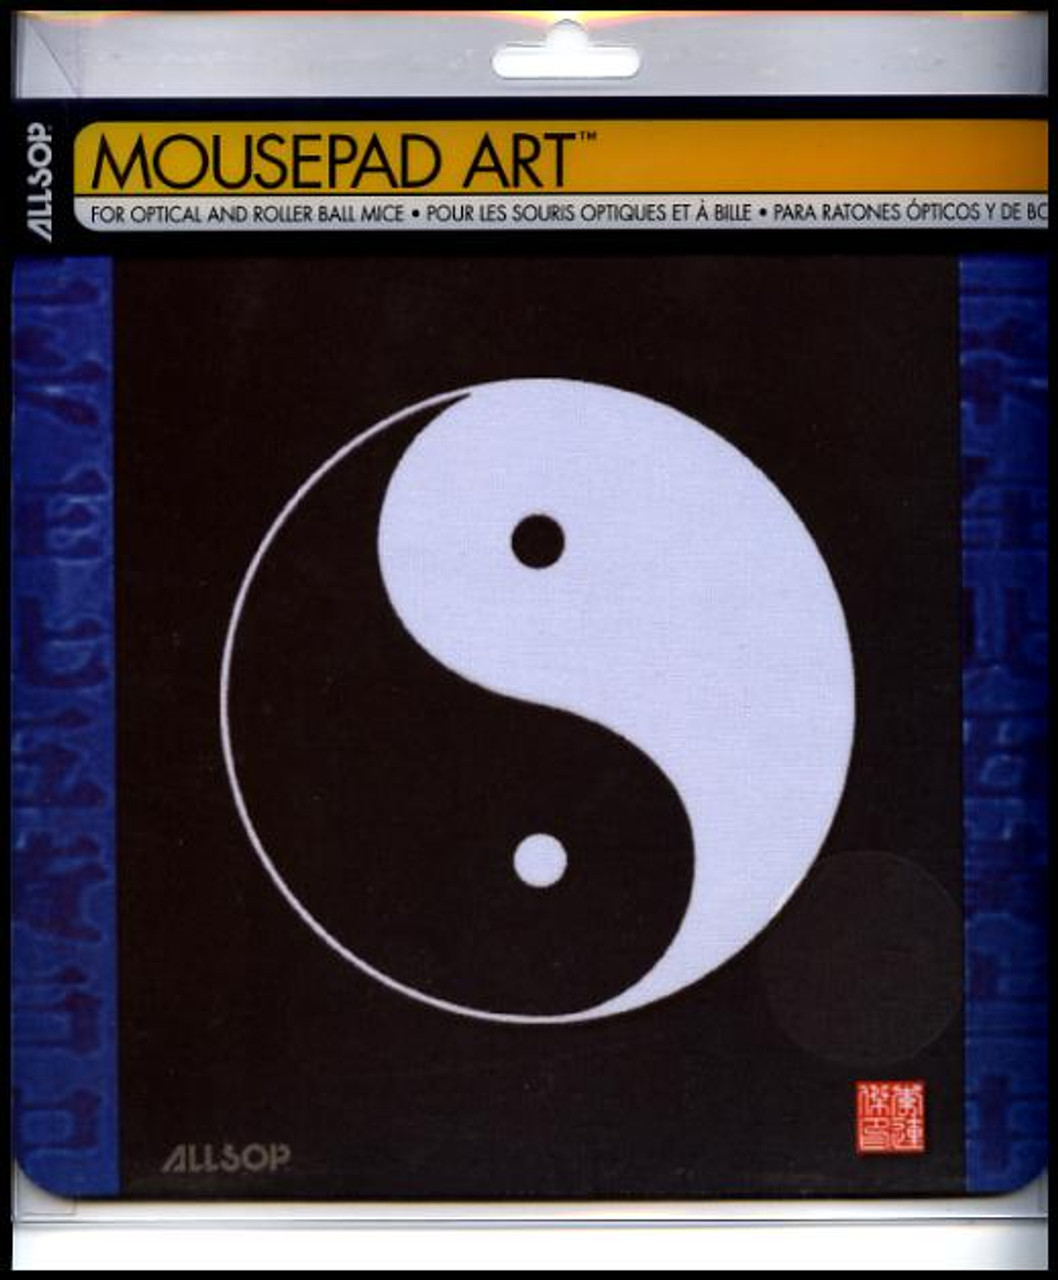 Allsop Yin Yang Mouse Pad Mat First Day Covers Online